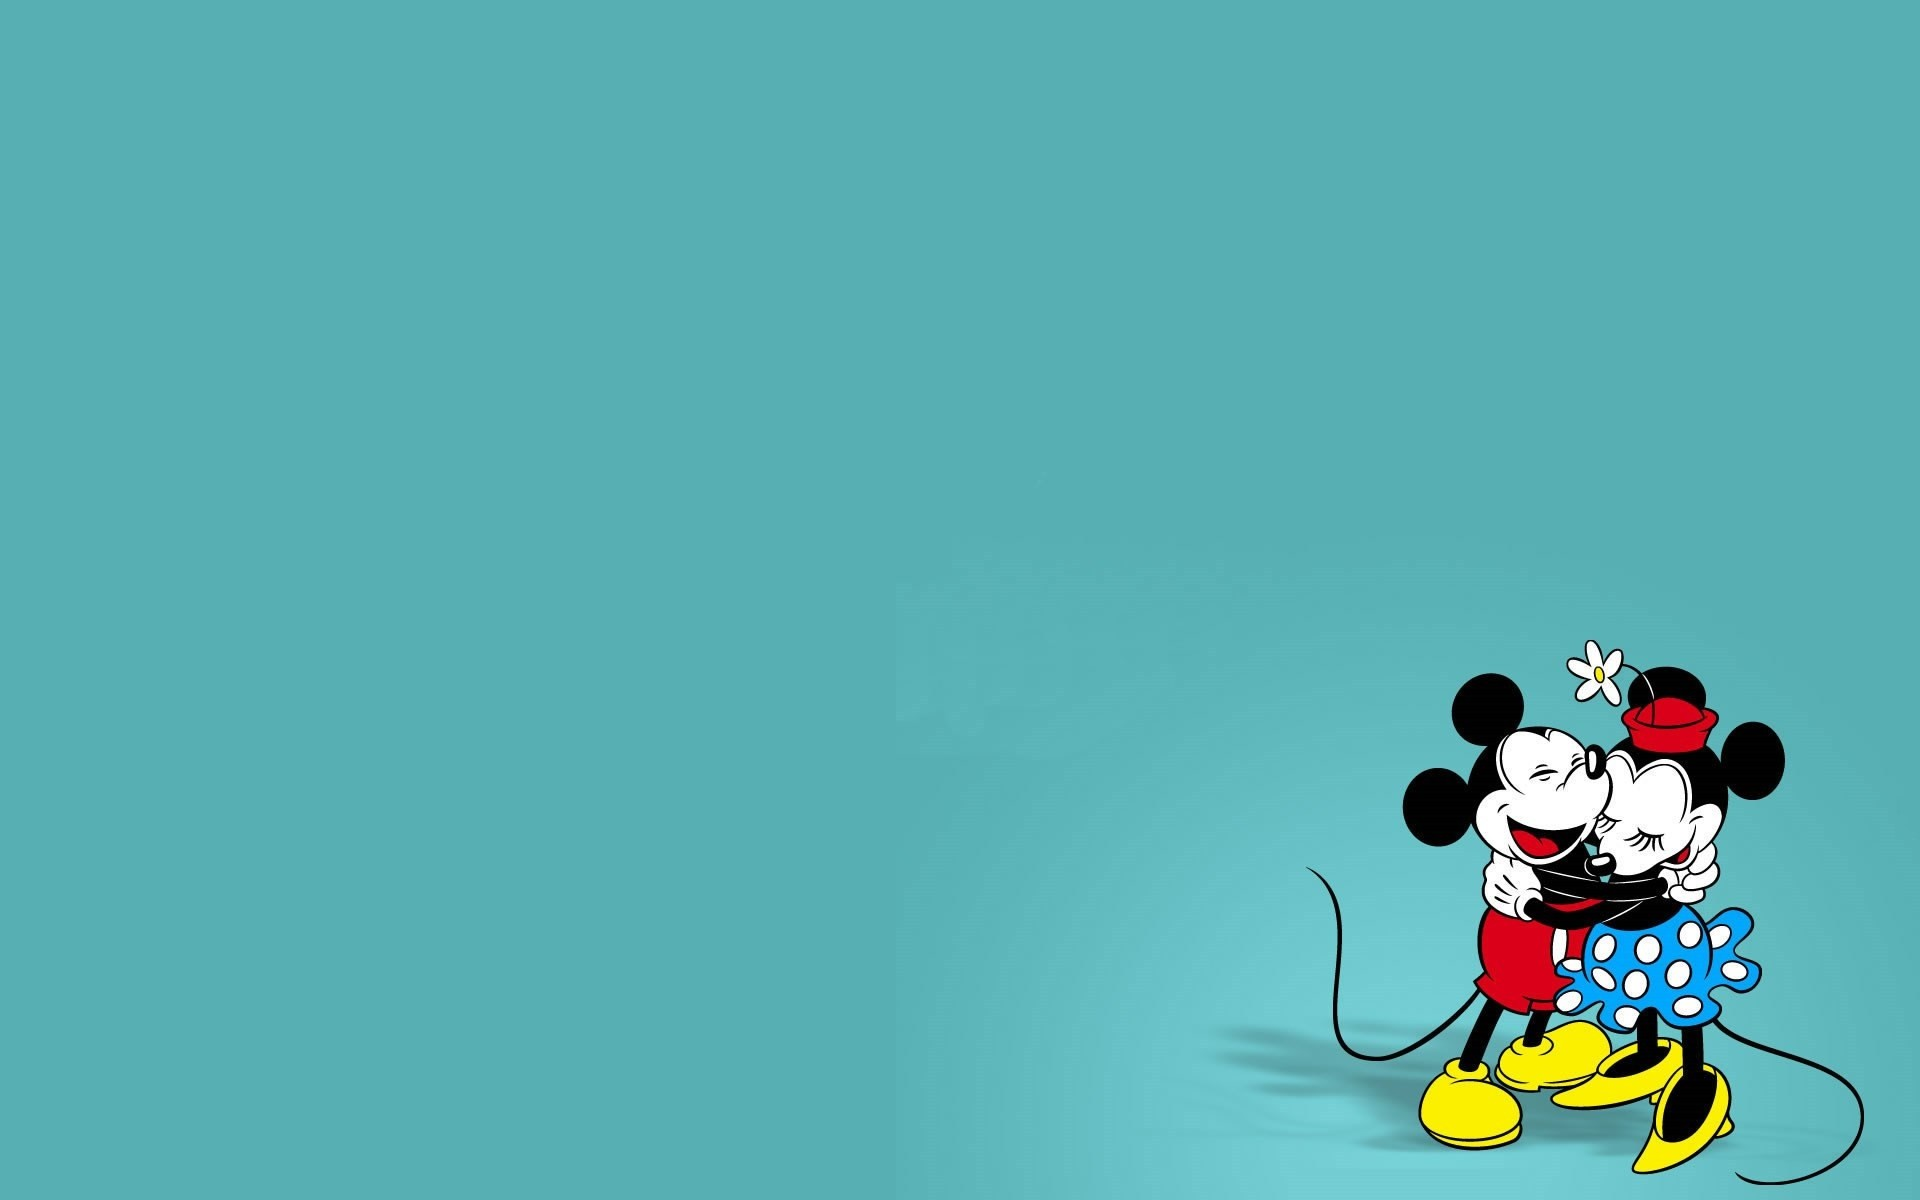 1920x1200 Mickey and minnie mouse cartoon wallpapers HD.